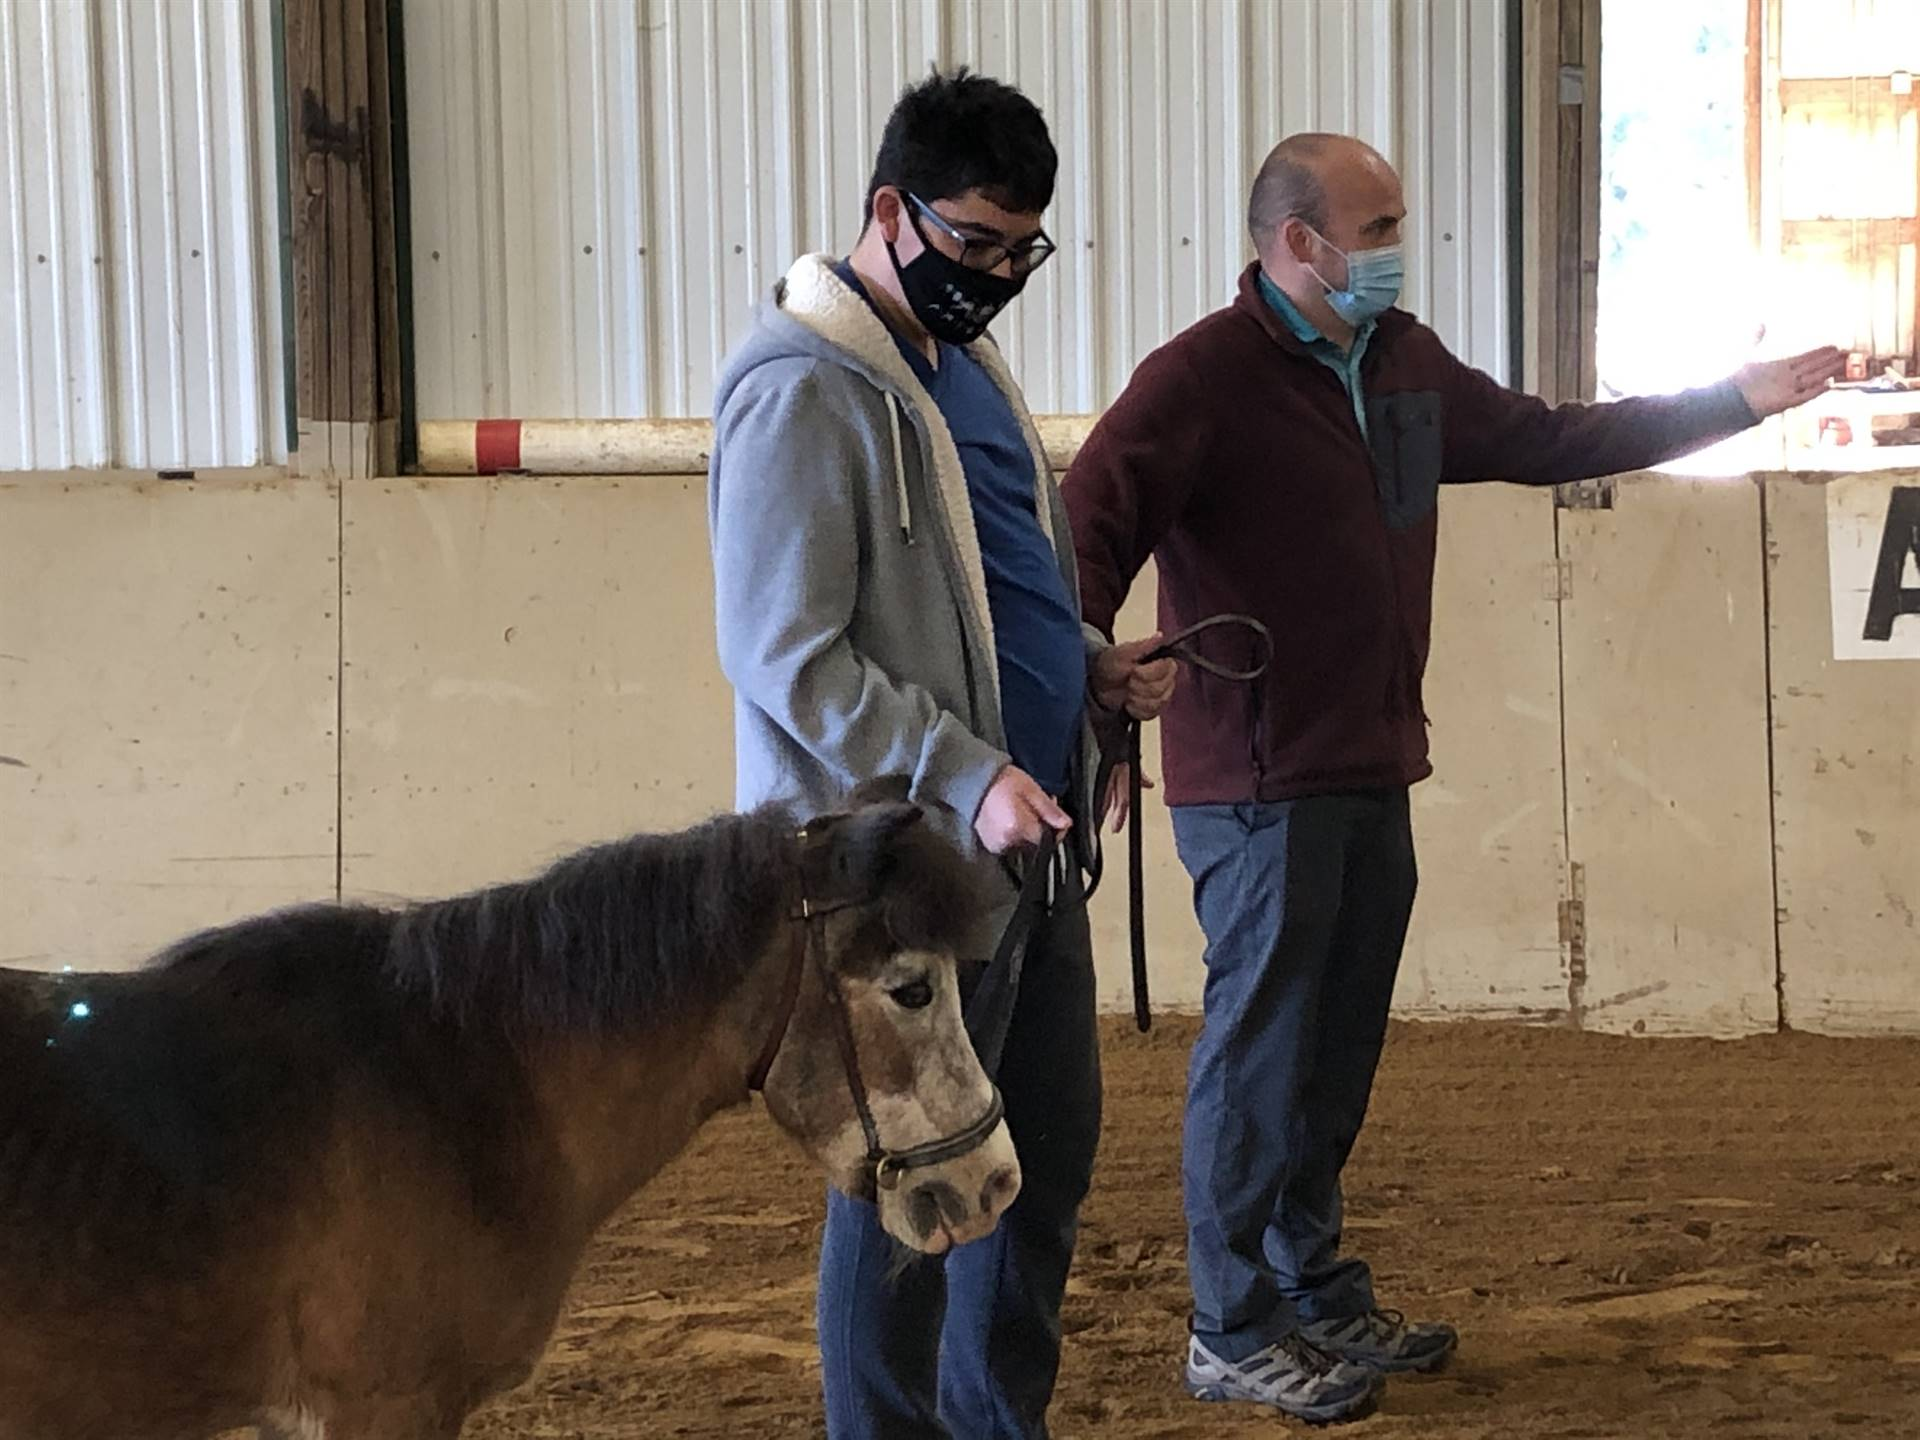 Student pictured practicing skills at side walking the horses during Equine Partnerships class!